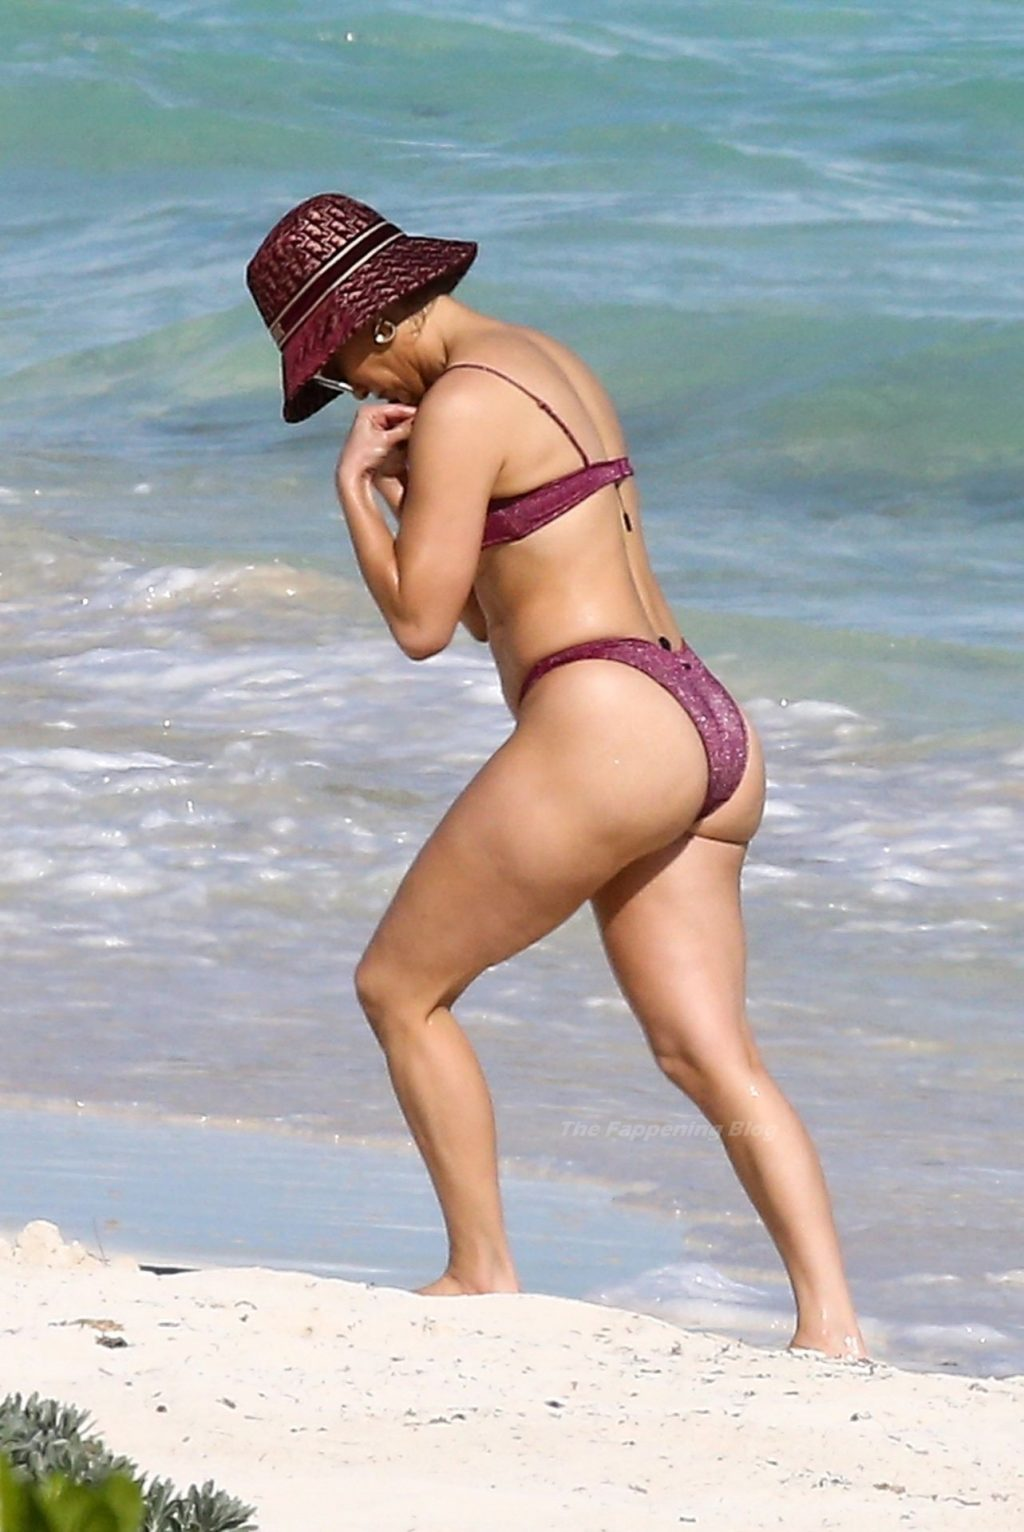 Jennifer Lopez Looks Hot in a Bikini While Pictured with Alex Rodriguez on the Beach (31 Photos)